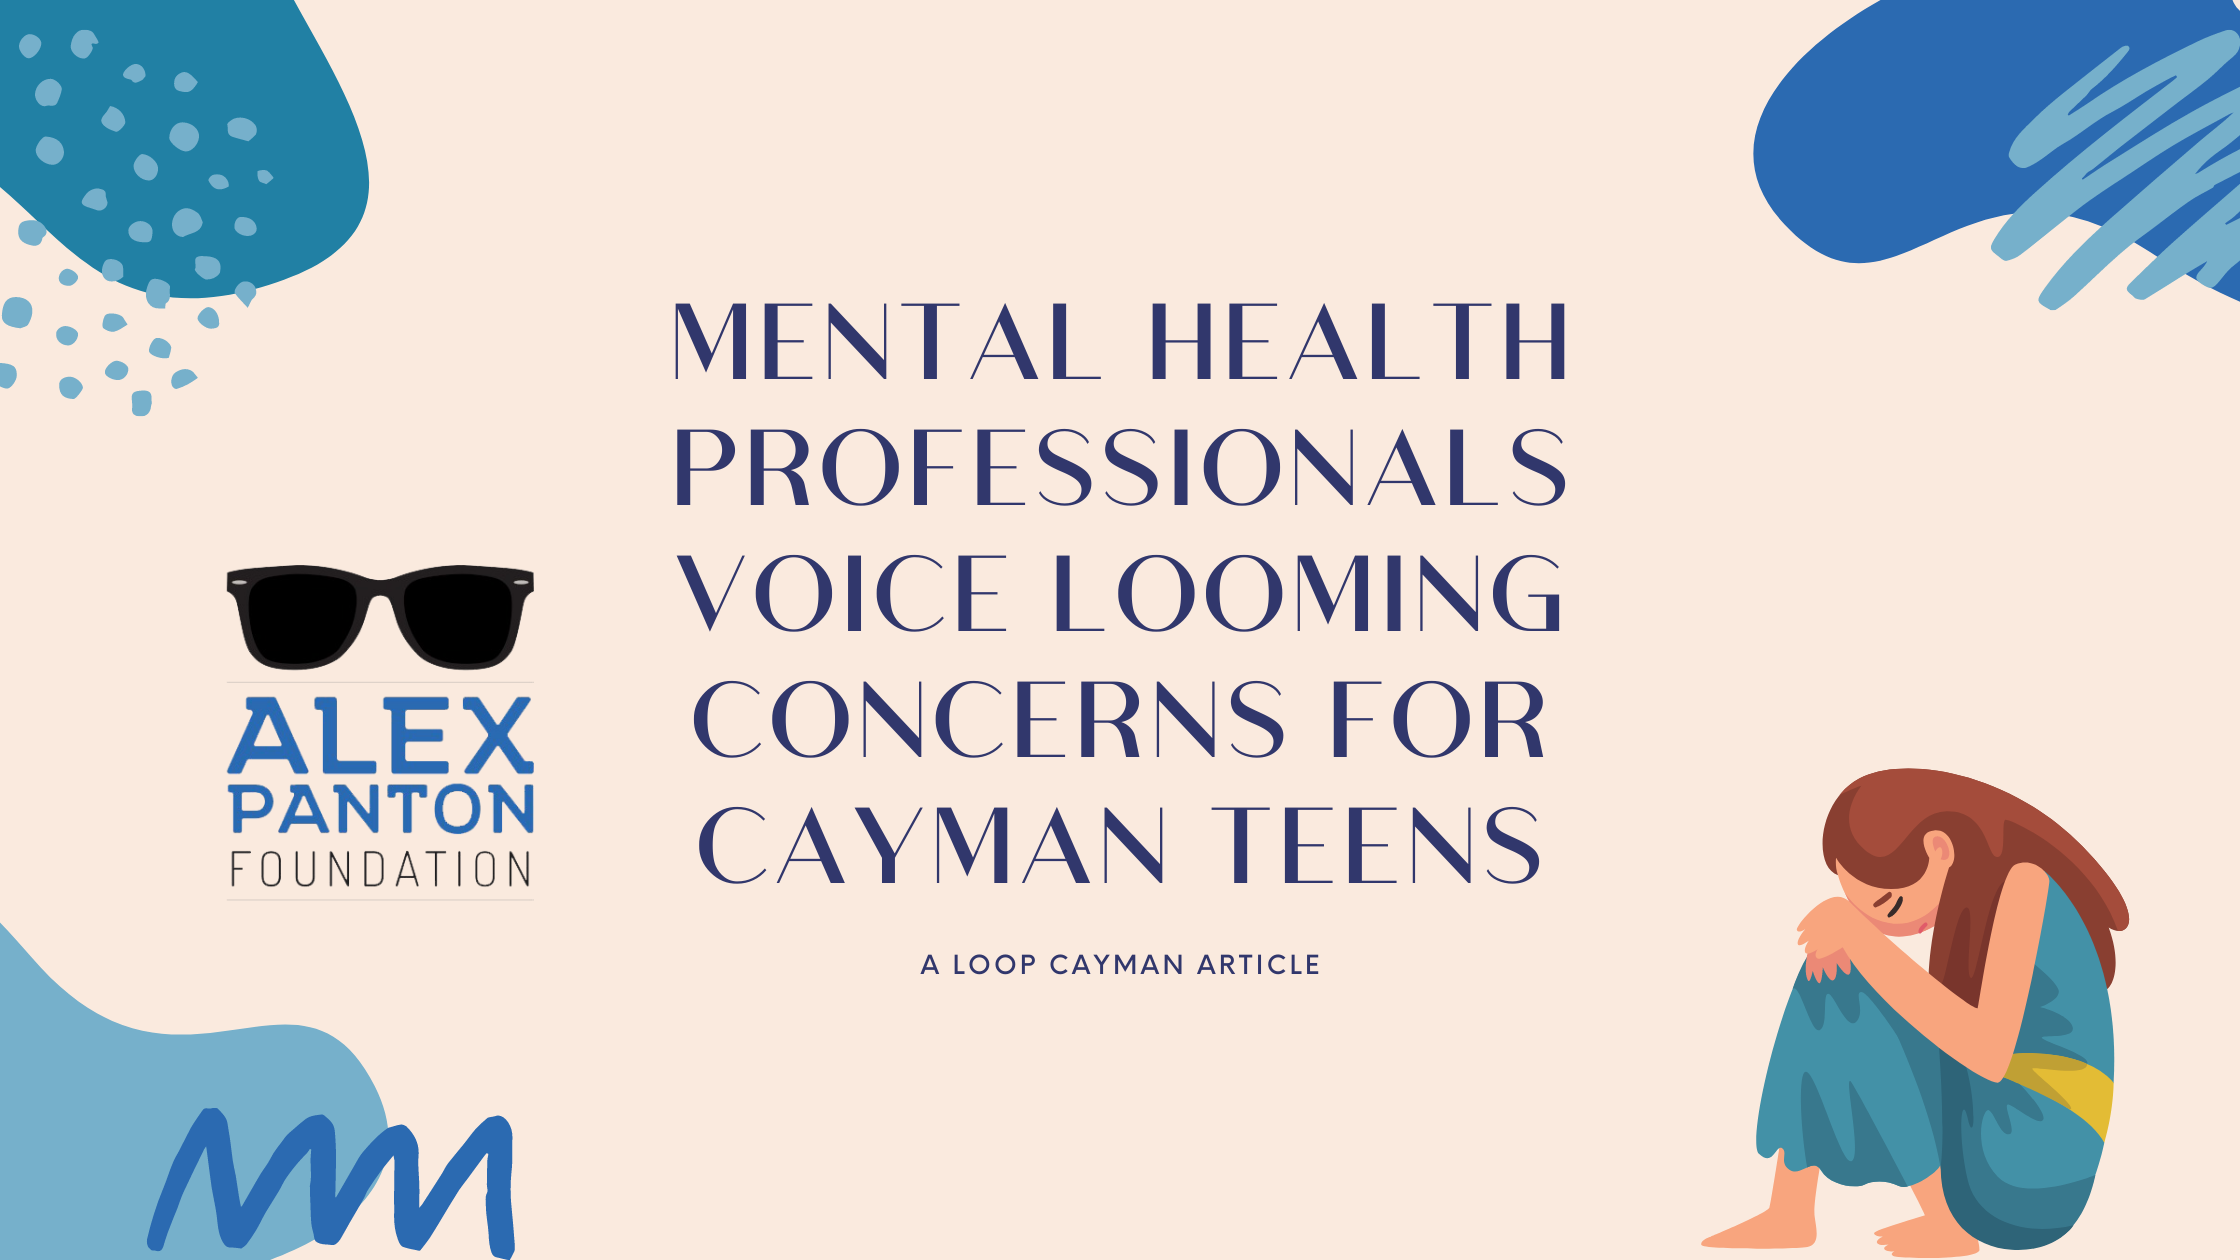 Mental health professionals voice looming concerns for Cayman teens